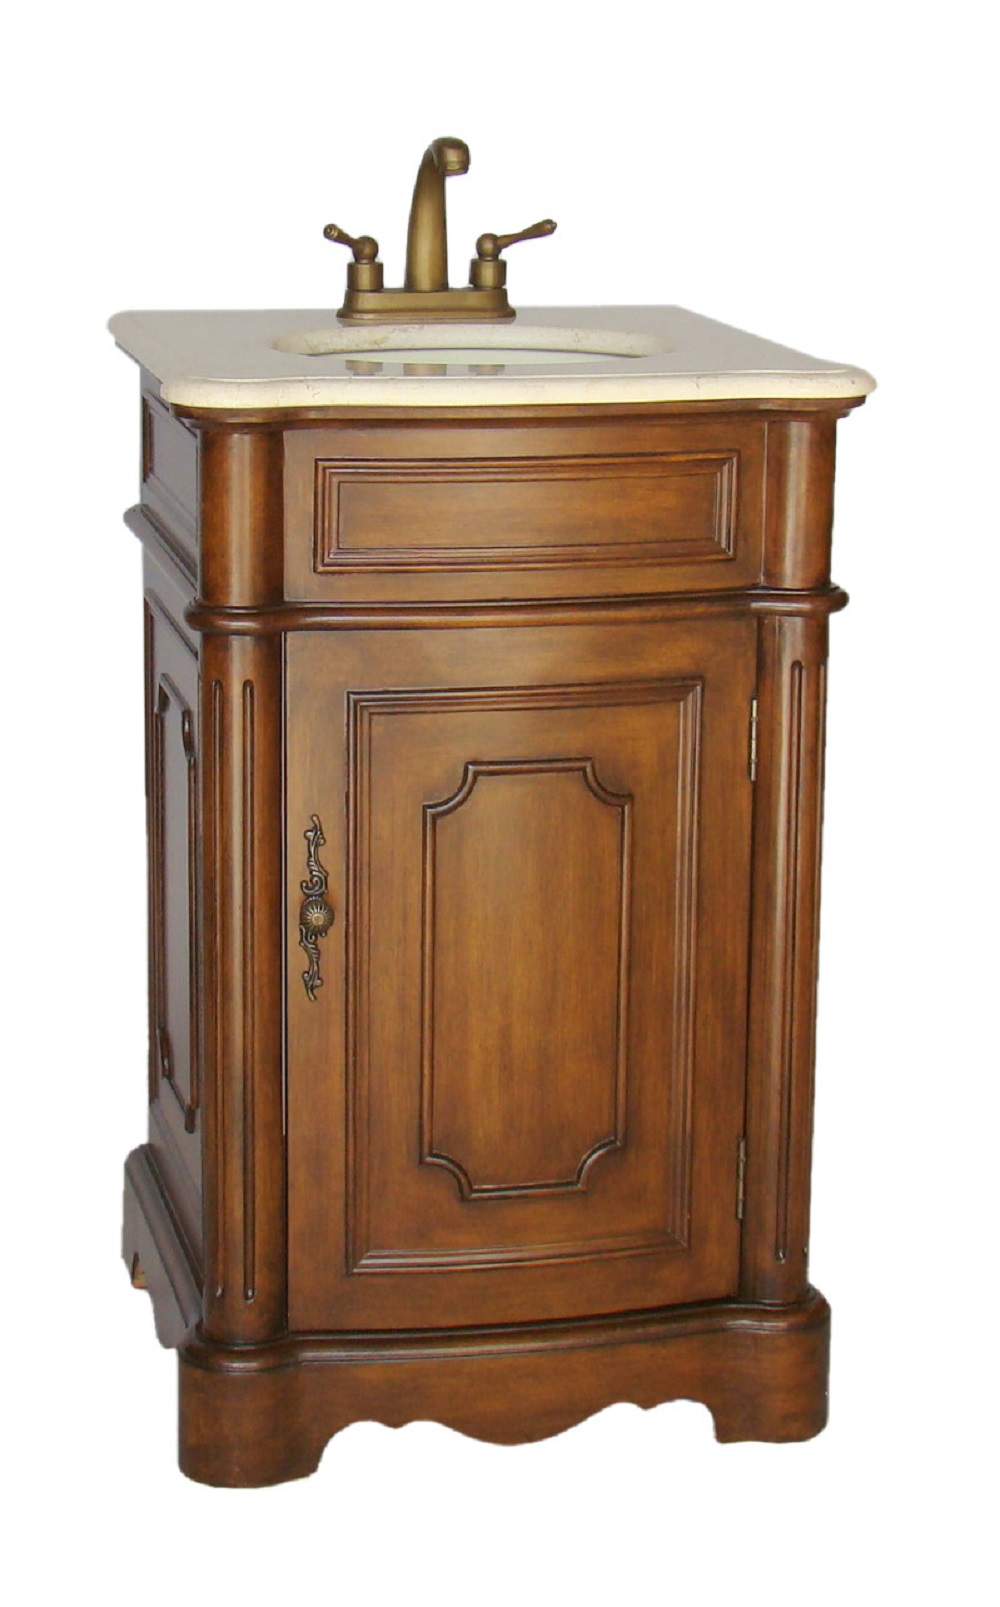 21 inch Traditional Small Size Bathroom Sink Vanity Medium ...